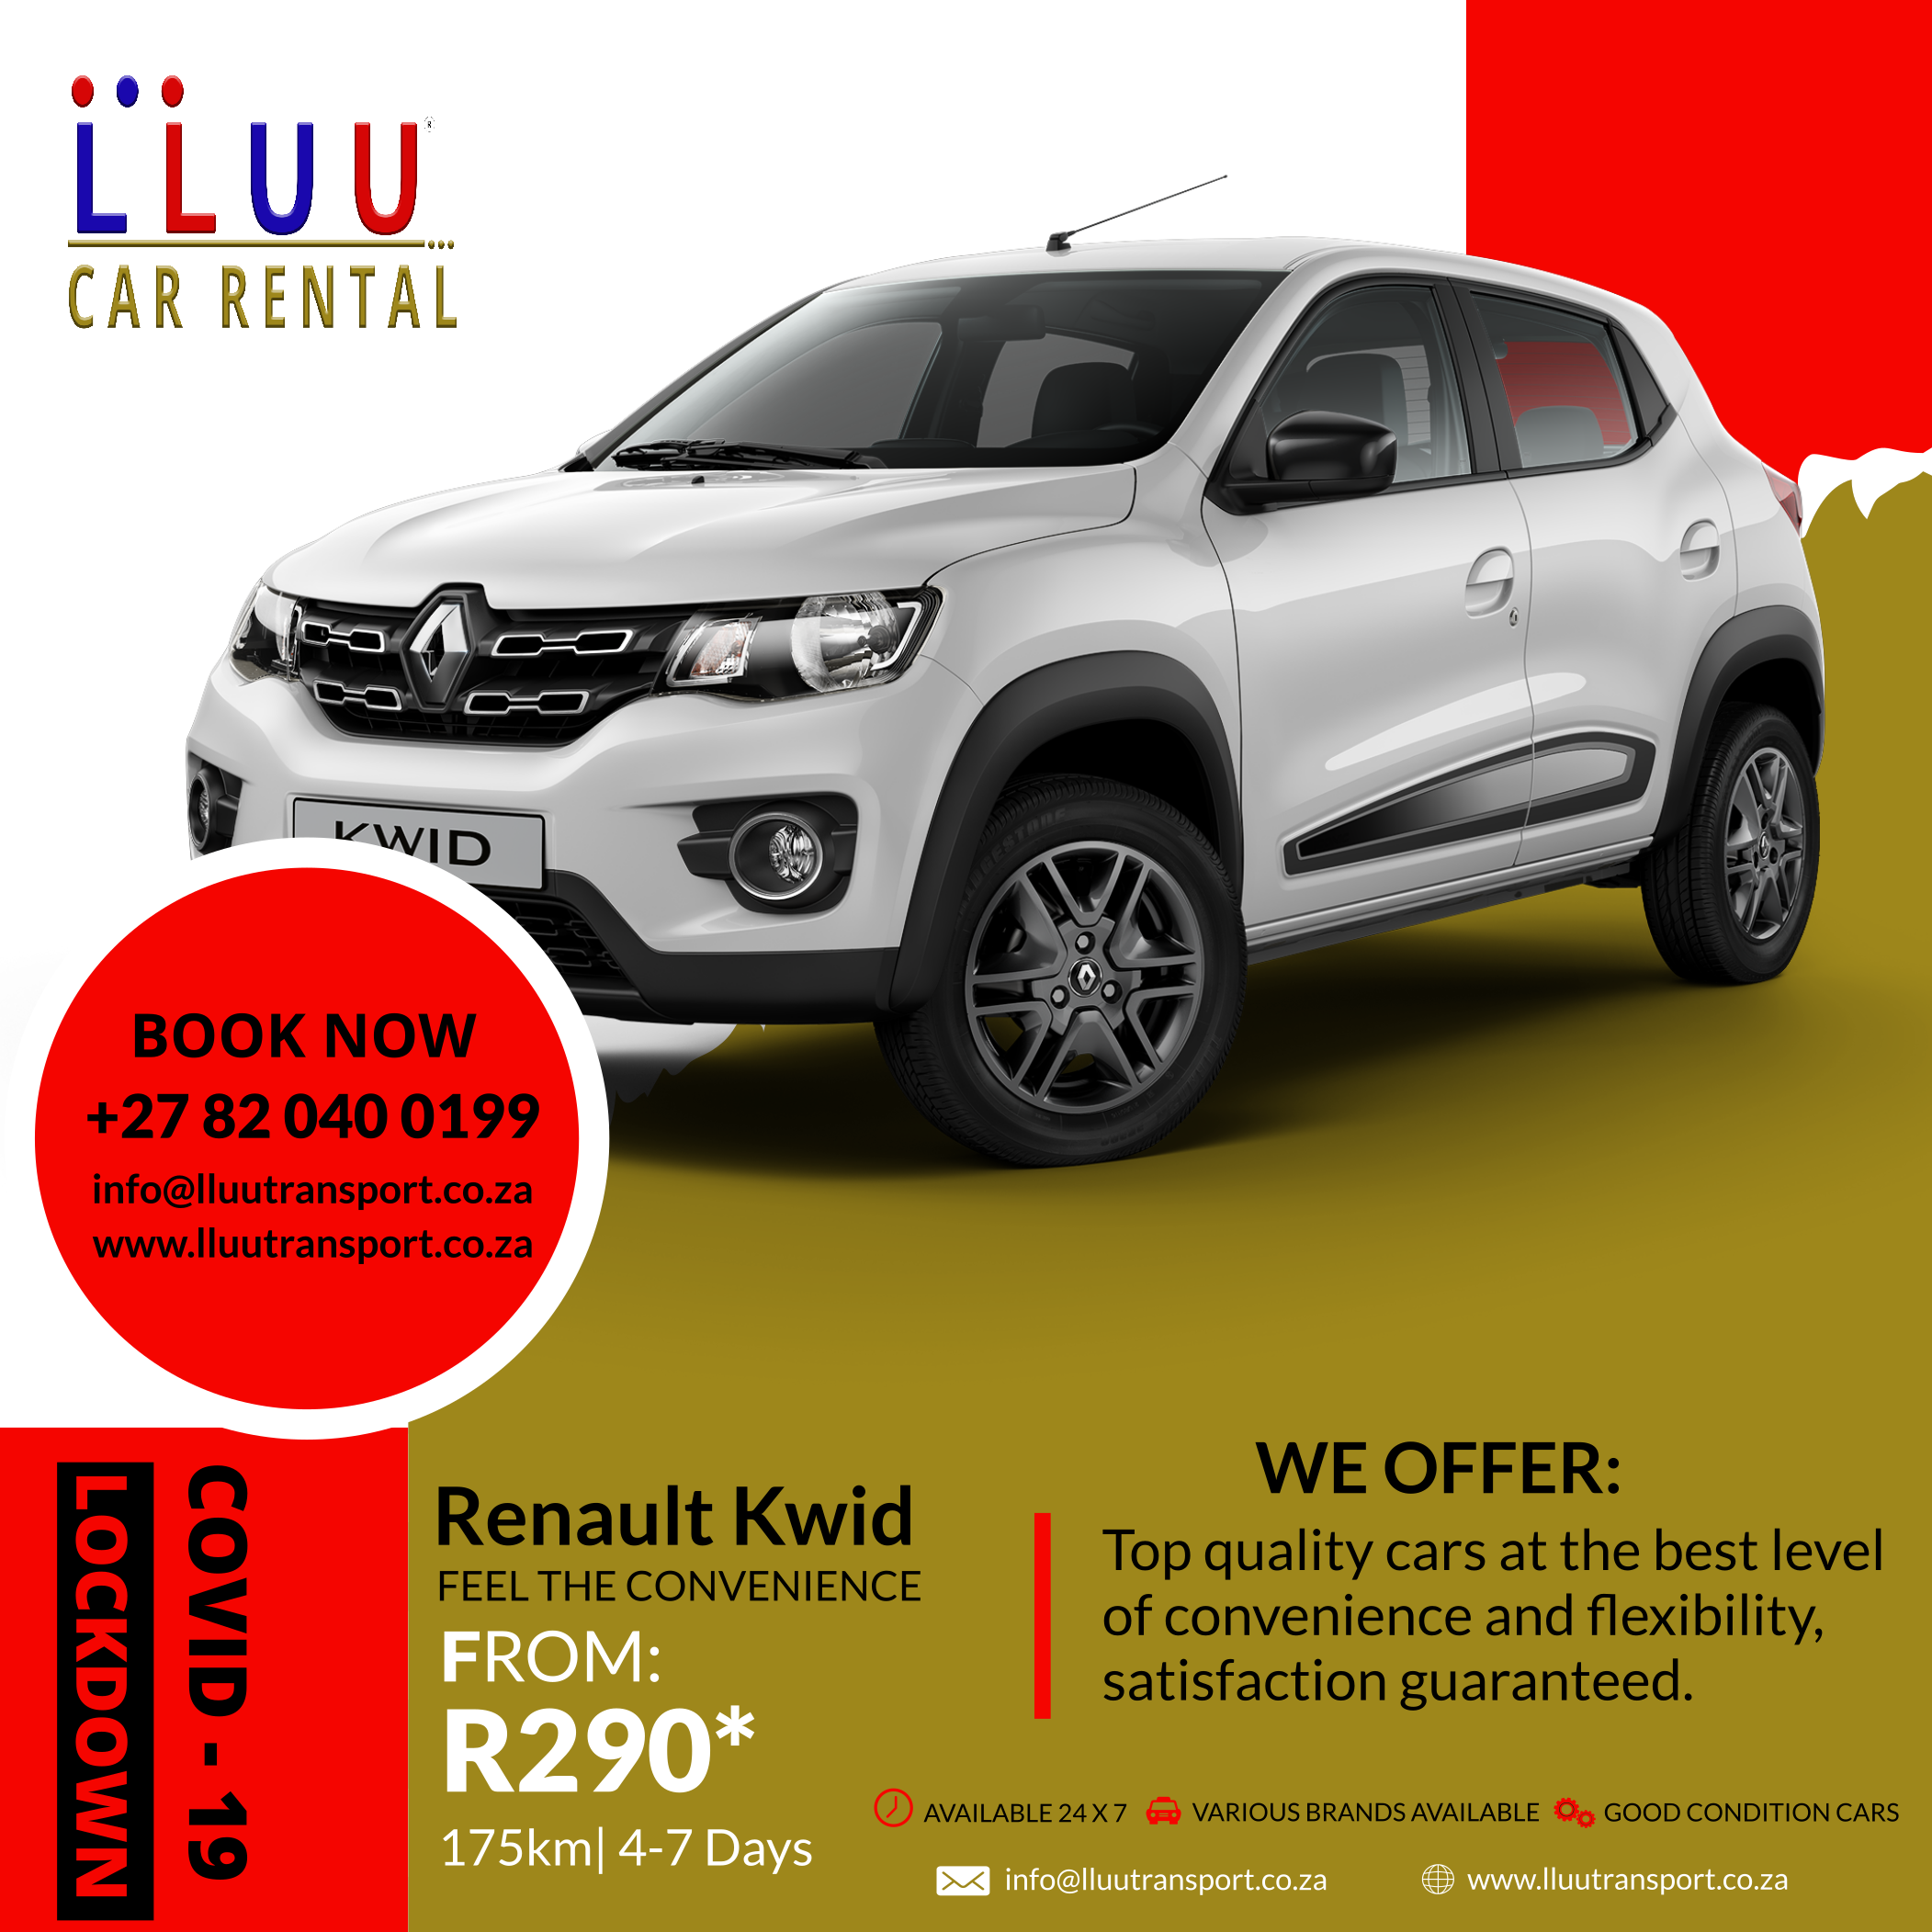 The easiest way to get car rental at affordable rates is to book from @LluuCar_Rental. Get Renault Kwid for 175km | 4-7 days from R290*. EFT & CASH PAYMENTS ACCEPTED! Book Now! +27 82 040 0199.  #EverydayDeals #carhire #bookacar #rentacar #renaultkwid #lluucarrental